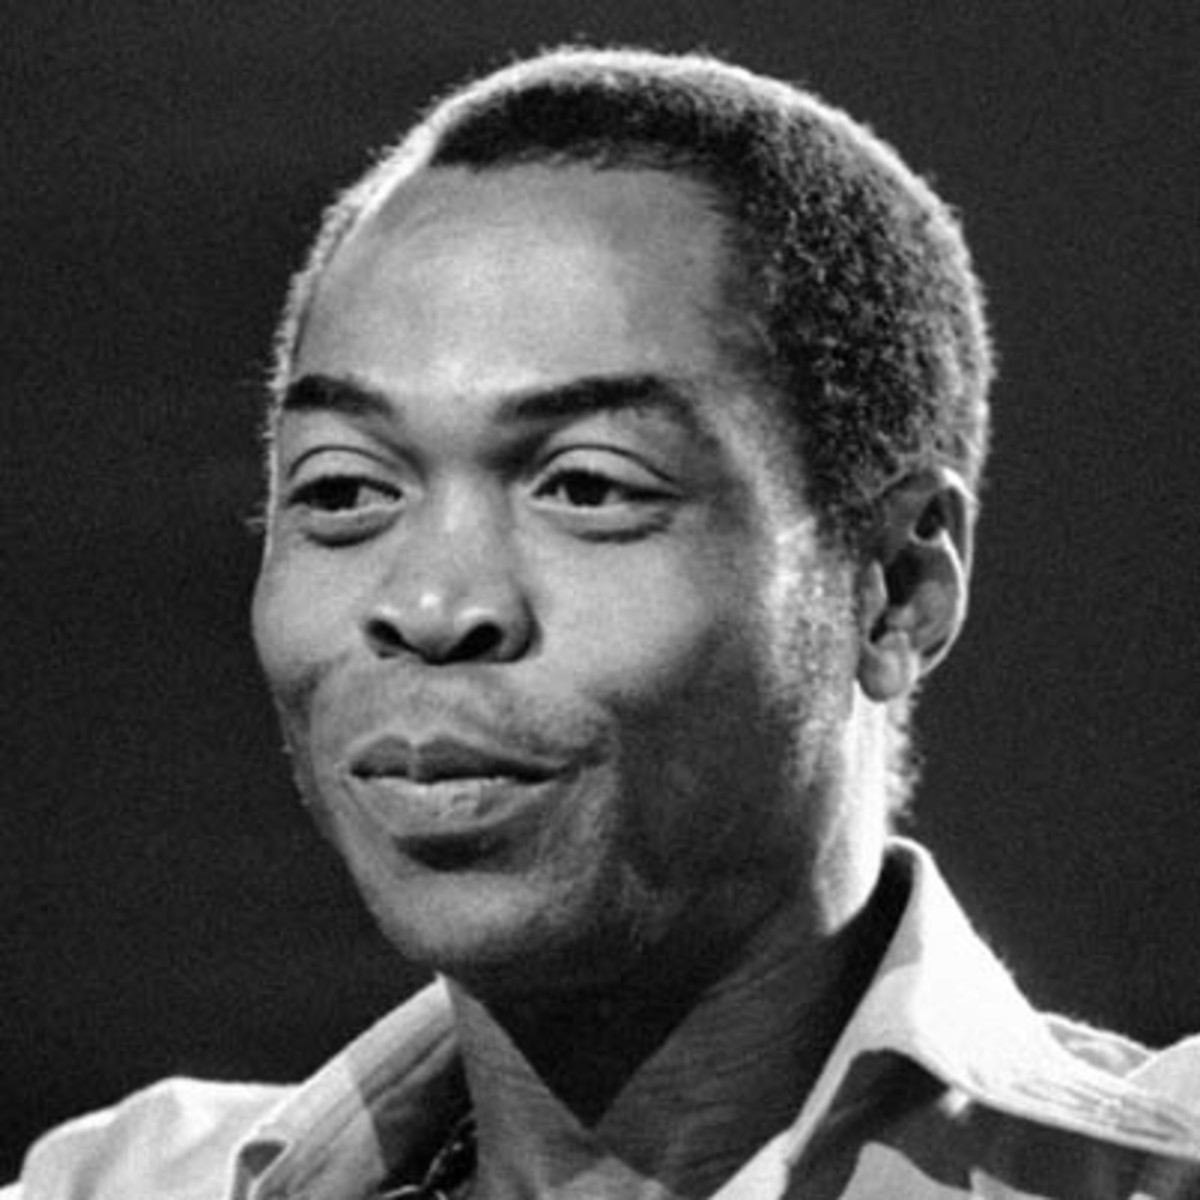 Fela Kuti Fela Ransome-Kuti and Africa 70 The Africa '70 Going In And Coming Out